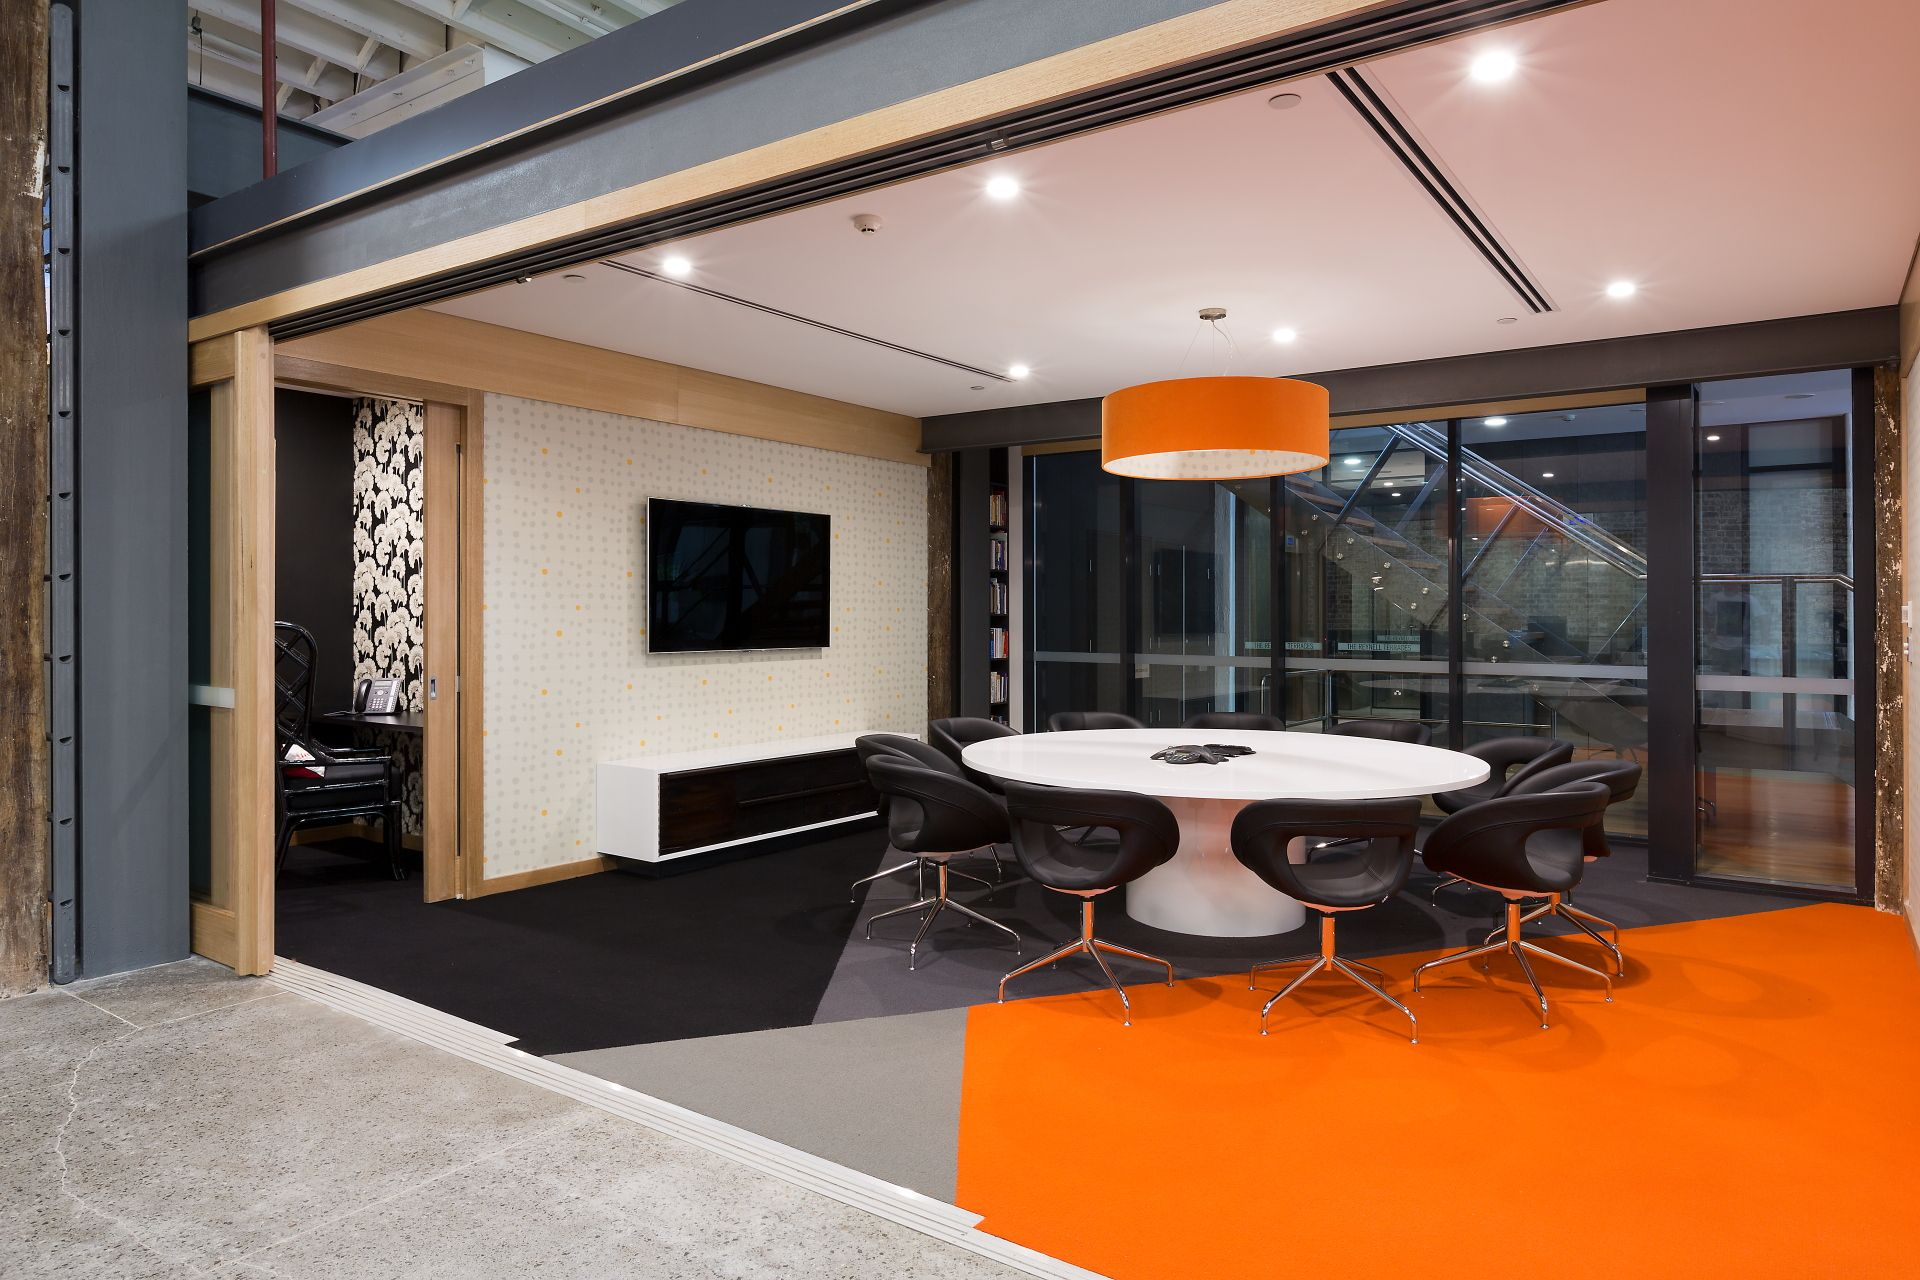 Rustic Modern Office Project By Sarah Tilley For Black Dot Sydney Australia